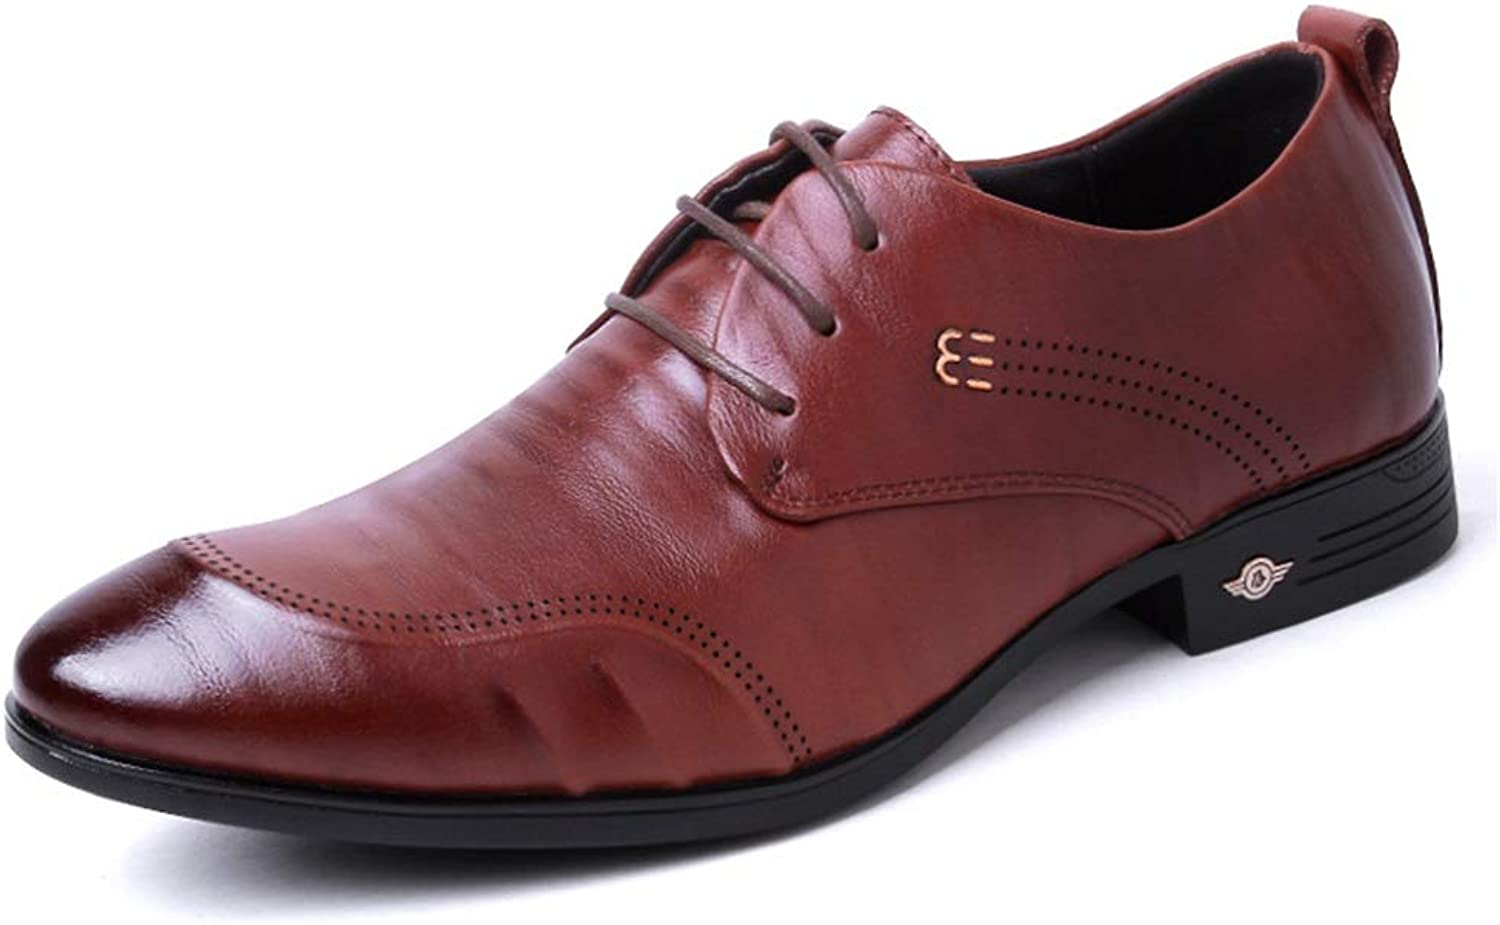 Hy-w Men's shoes, Fall Winter Business Dress shoes, Soft Sole Man Leather shoes, Anti-Slip Casual Lace-Up shoes (color   A, Size   41)